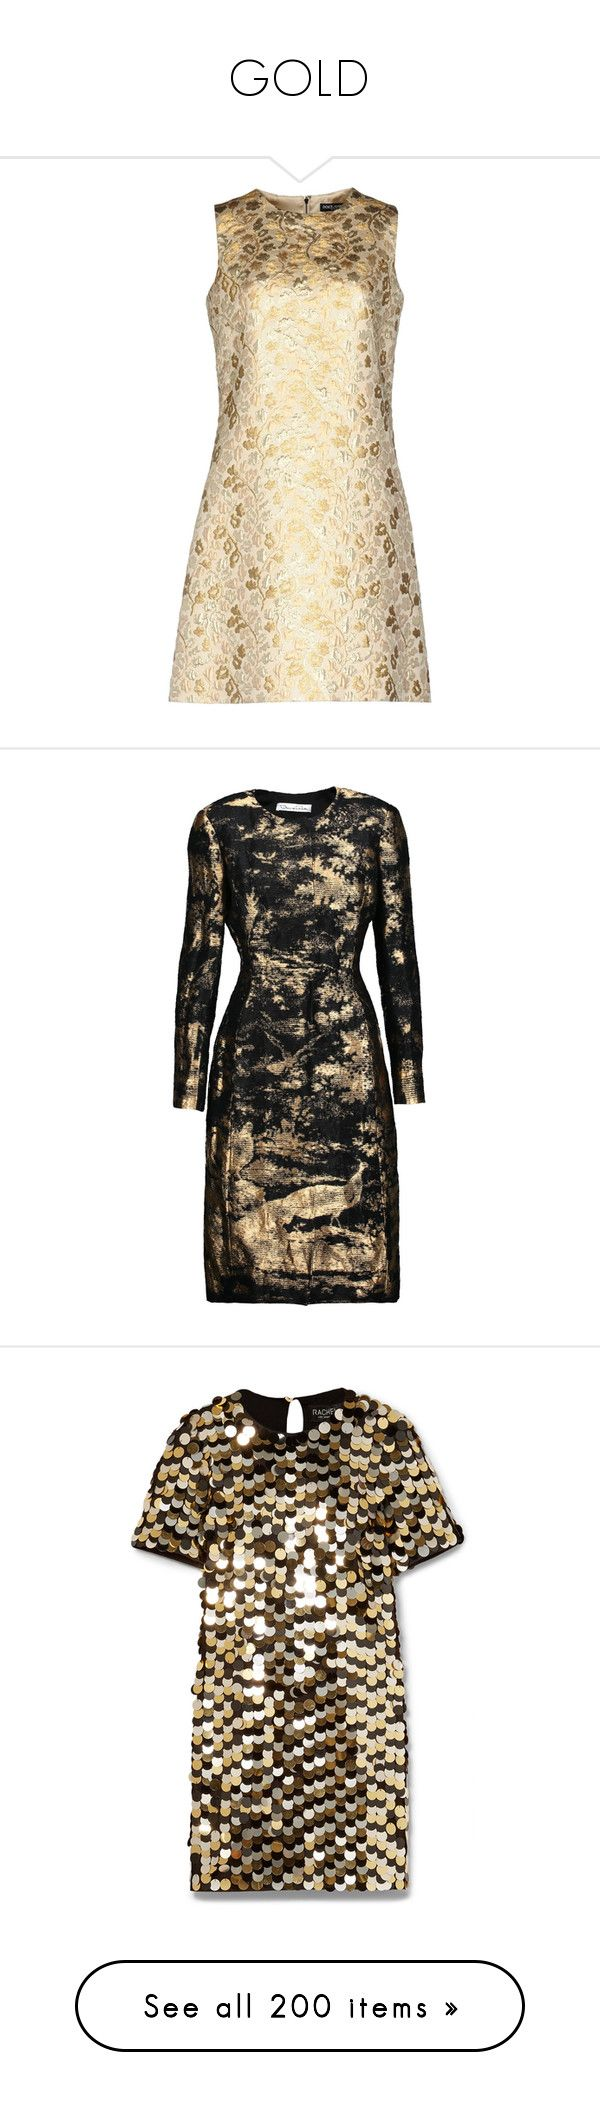 """""""GOLD"""" by shoppings9 ❤ liked on Polyvore featuring dresses, gold, trapeze dresses, beige dress, no sleeve dress, dolce gabbana dress, swing dresses, outerwear, coats and oscar de la renta"""